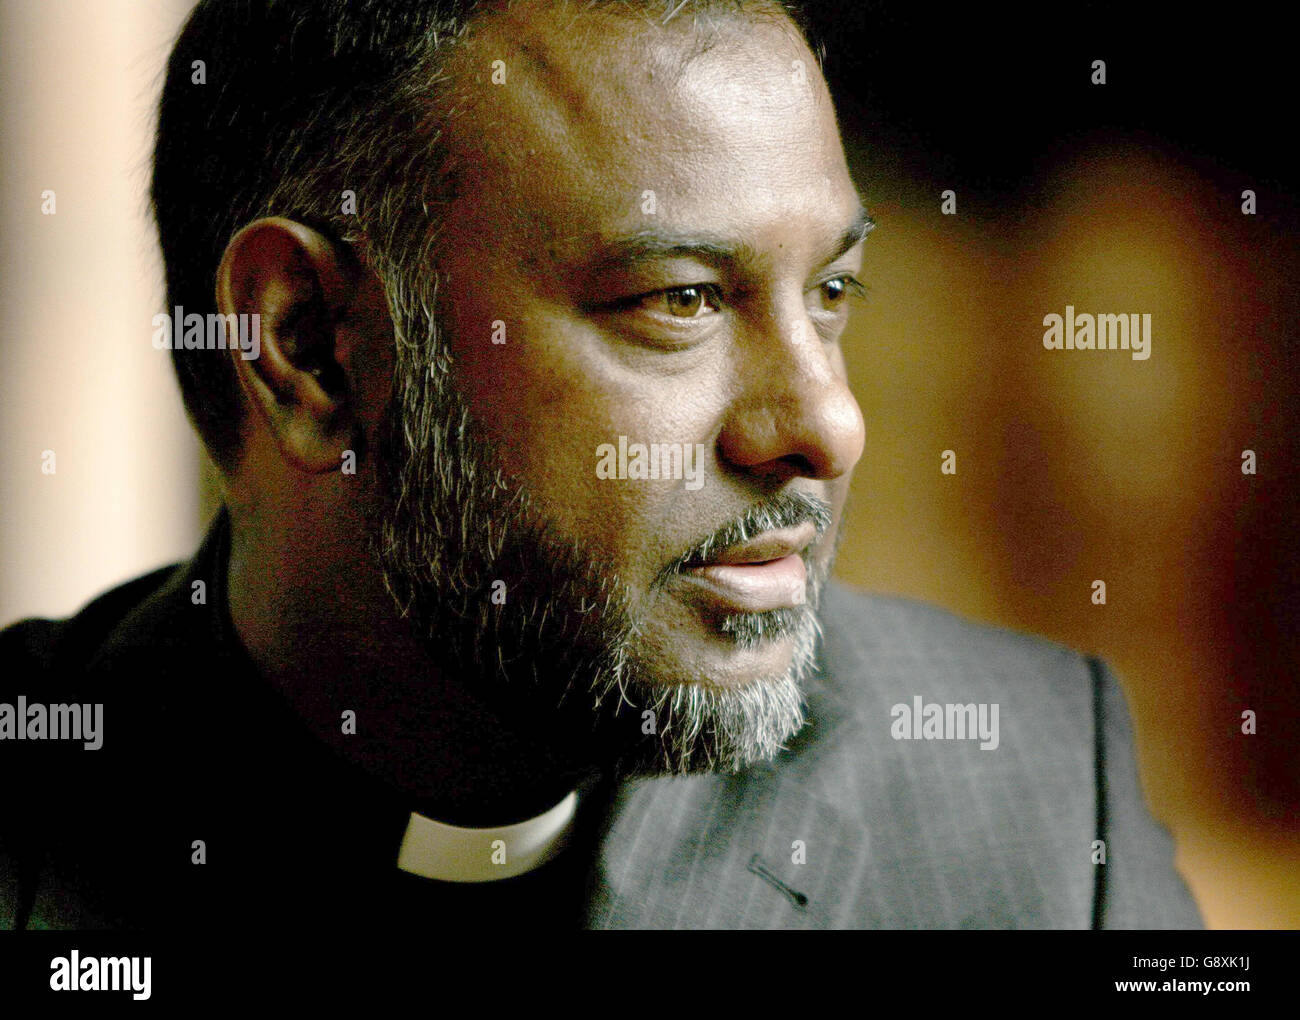 RELIGION Dean - Stock Image